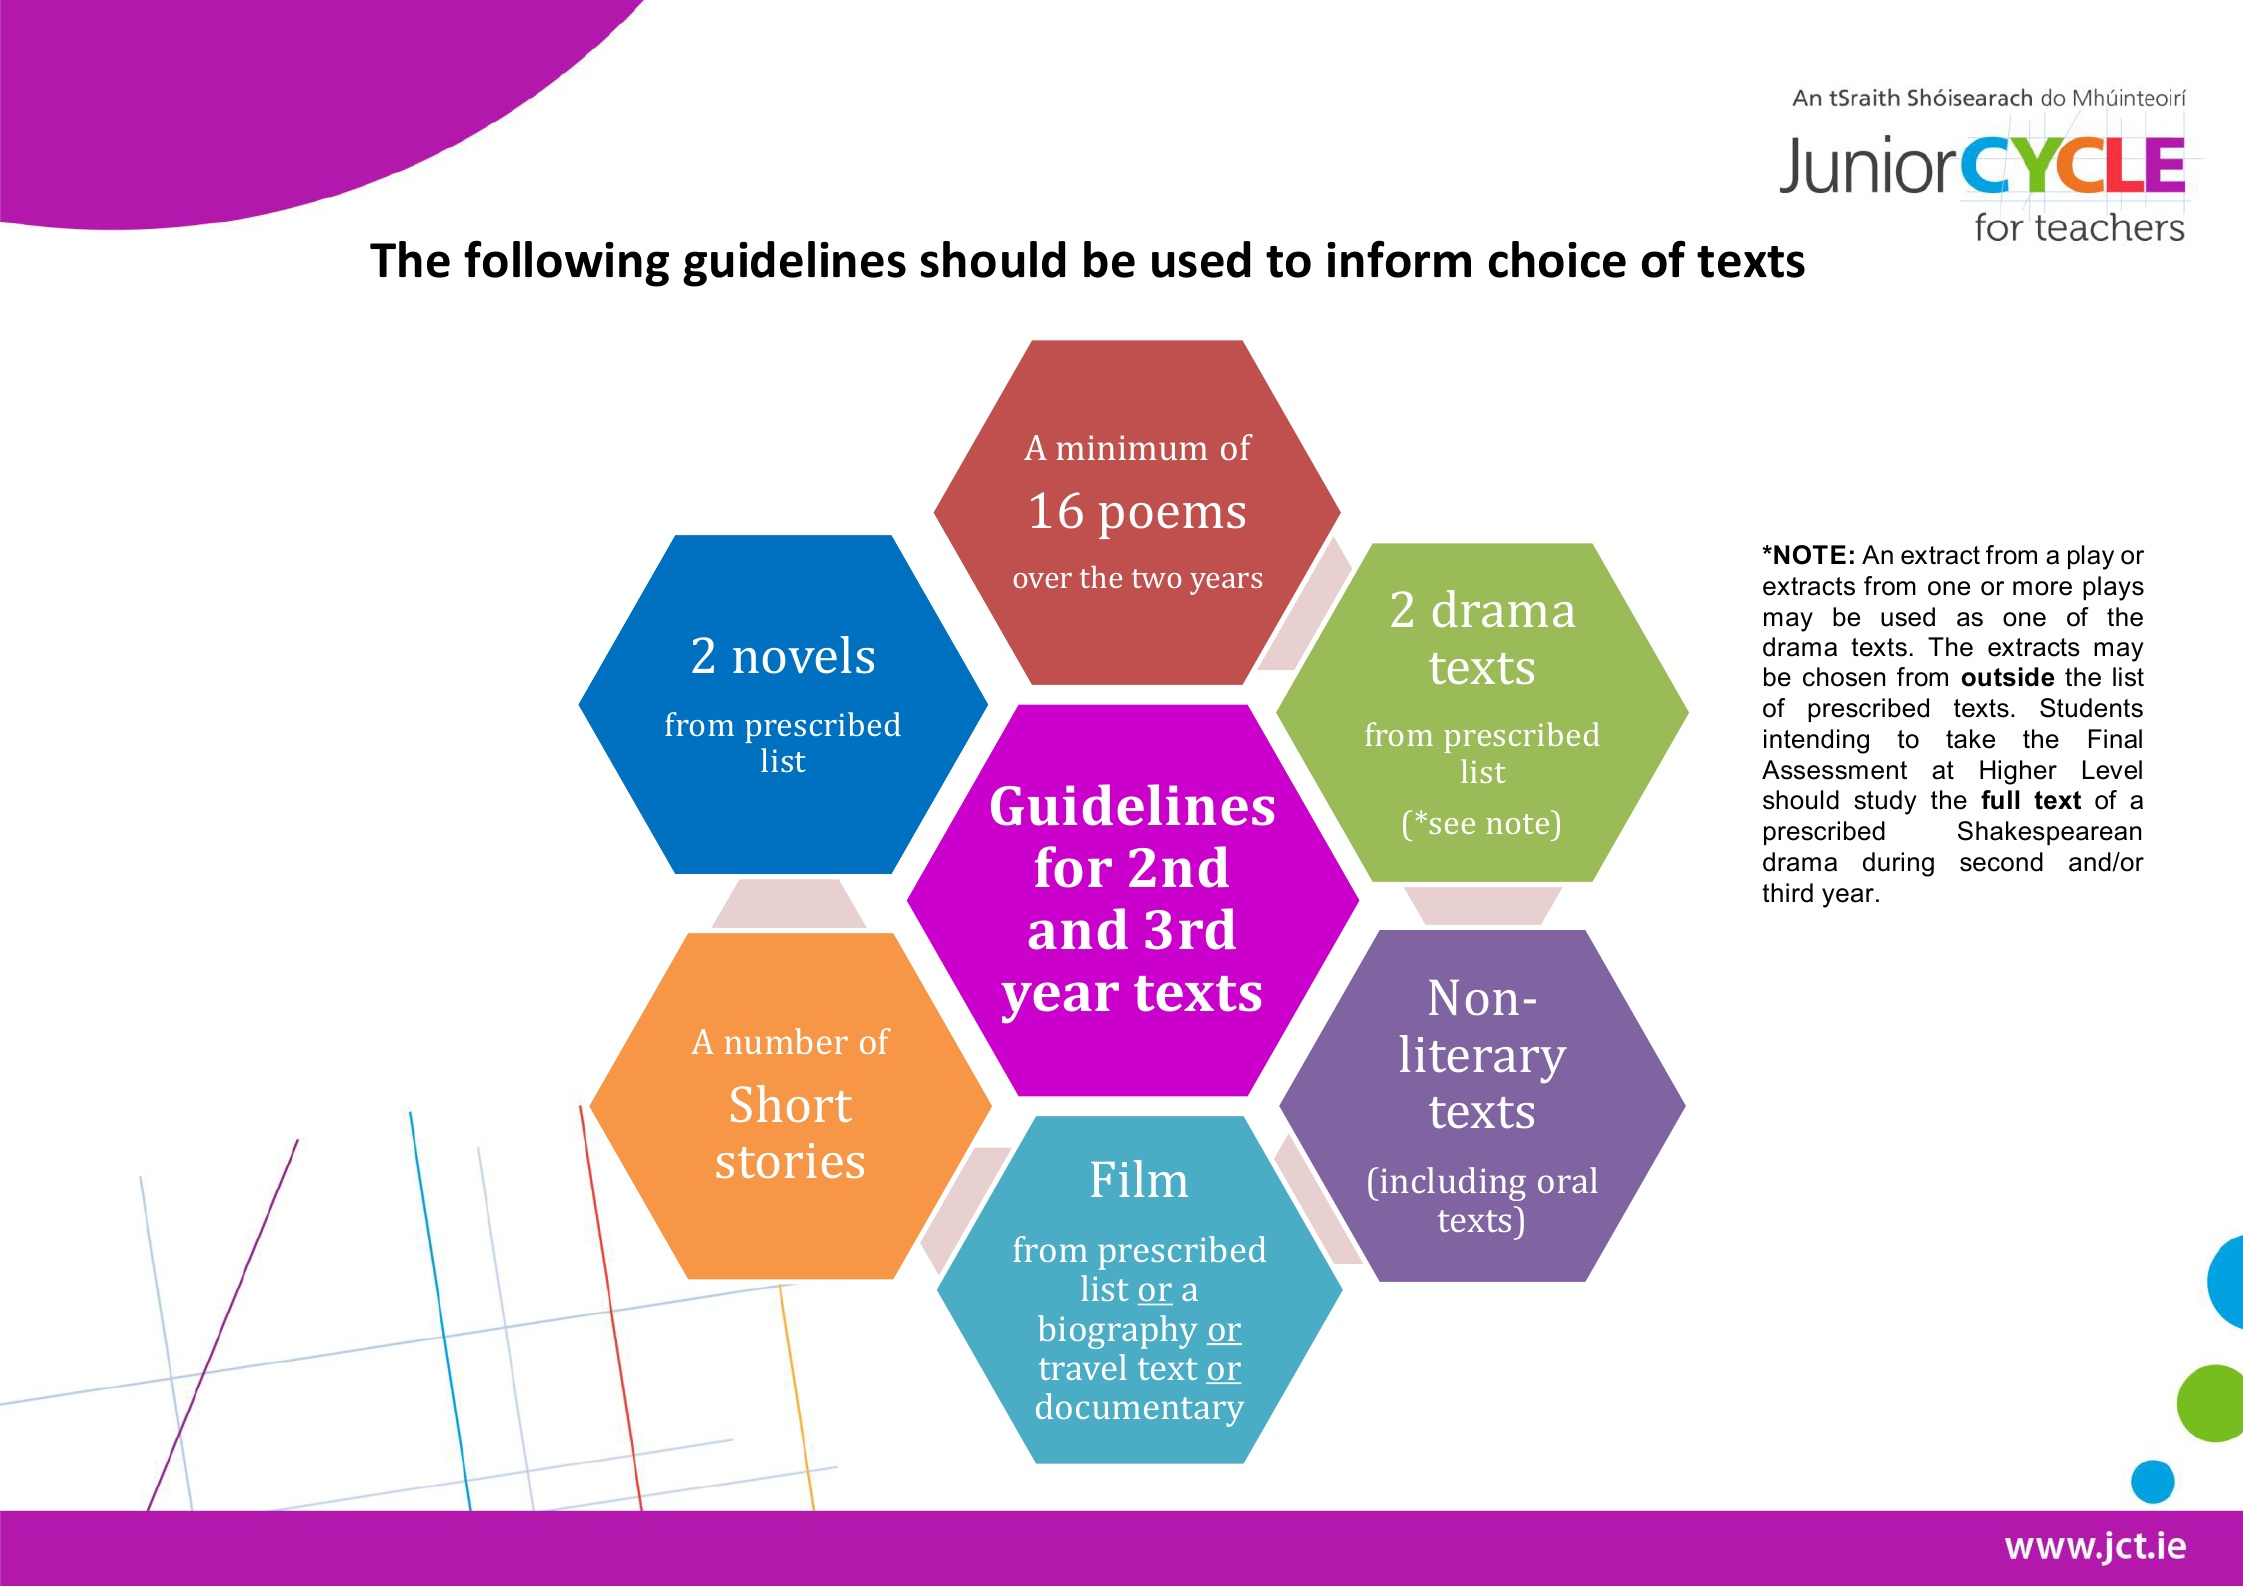 Guidelines to inform choice of texts for 2nd and 3rd year 2016